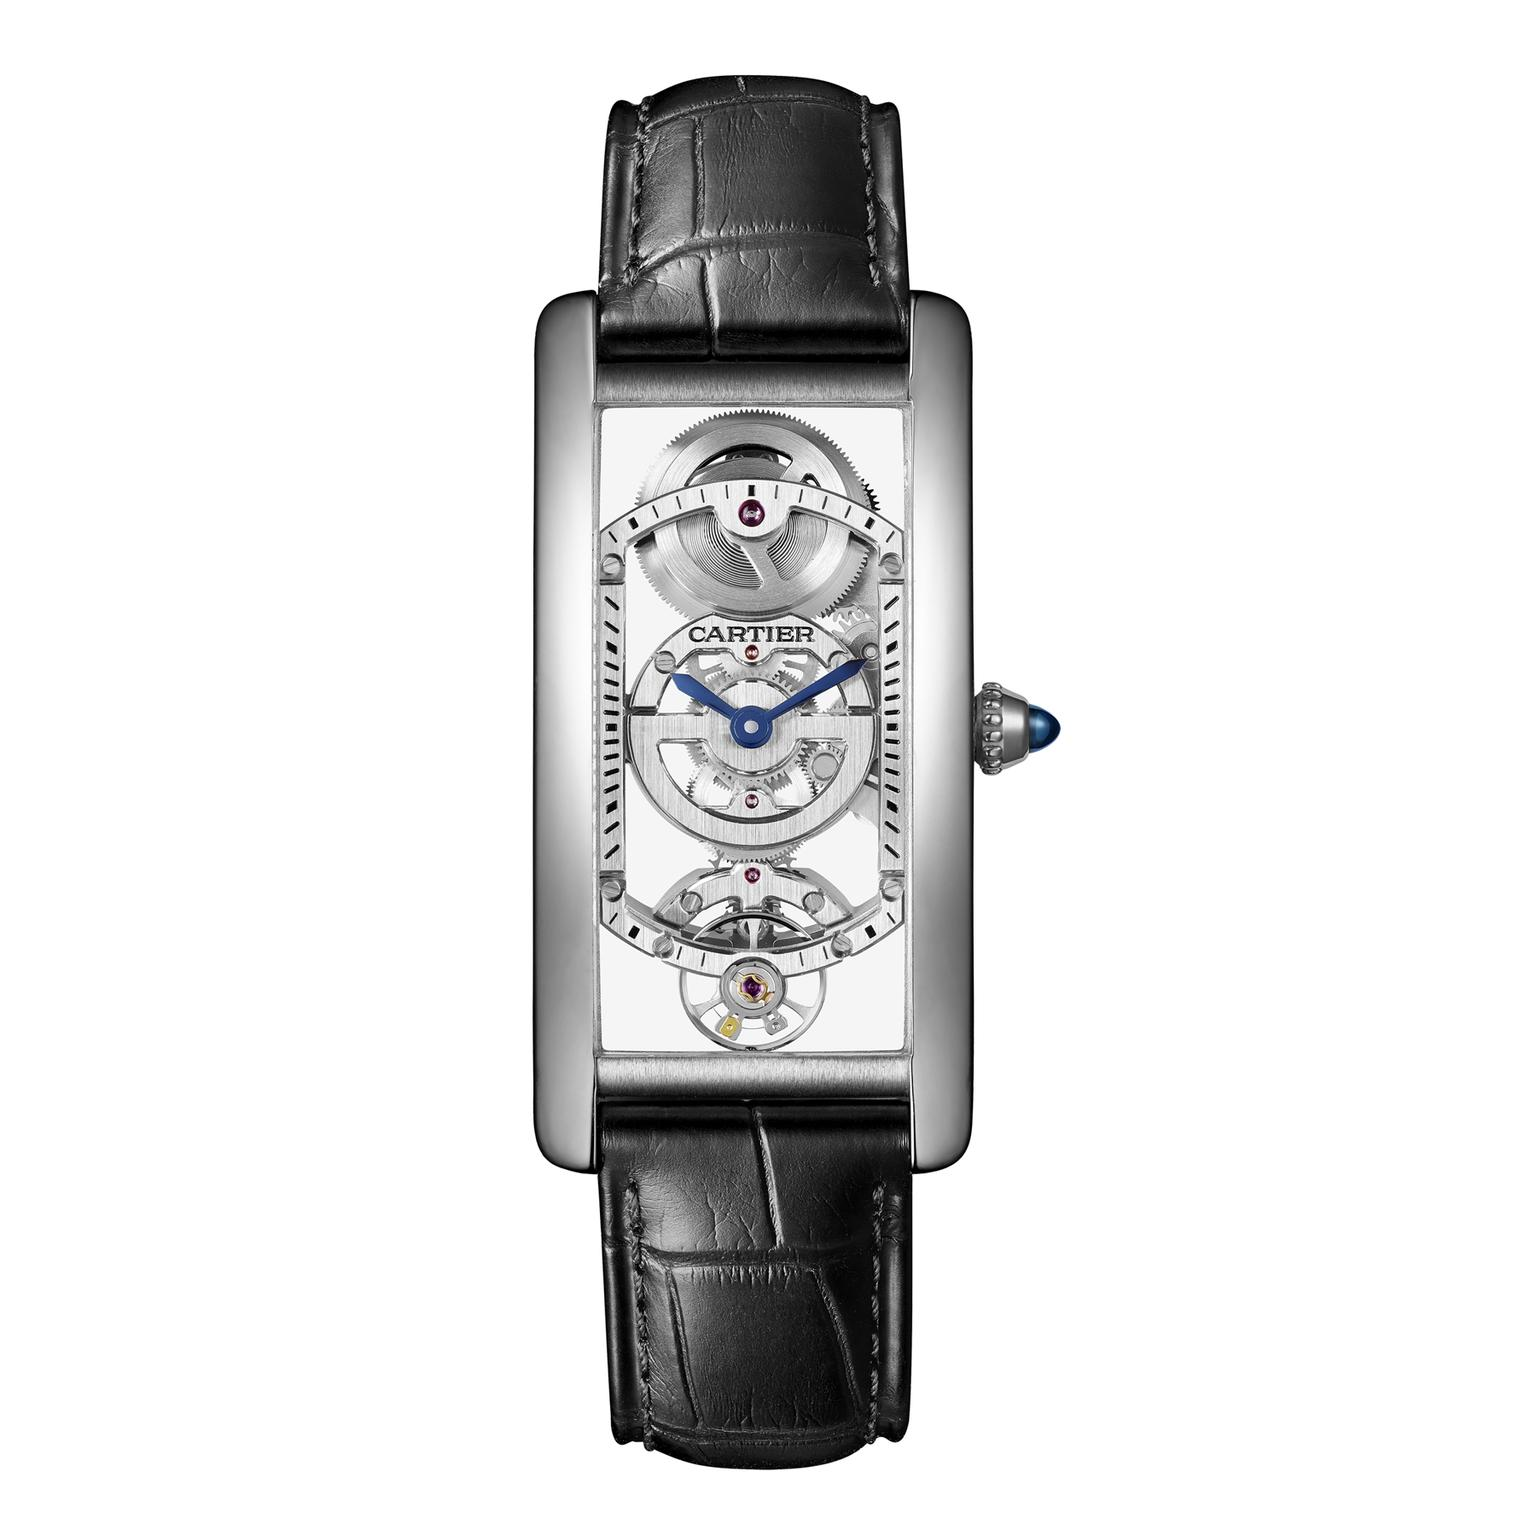 Cartier Tank Cintrée Skeleton platinum watch